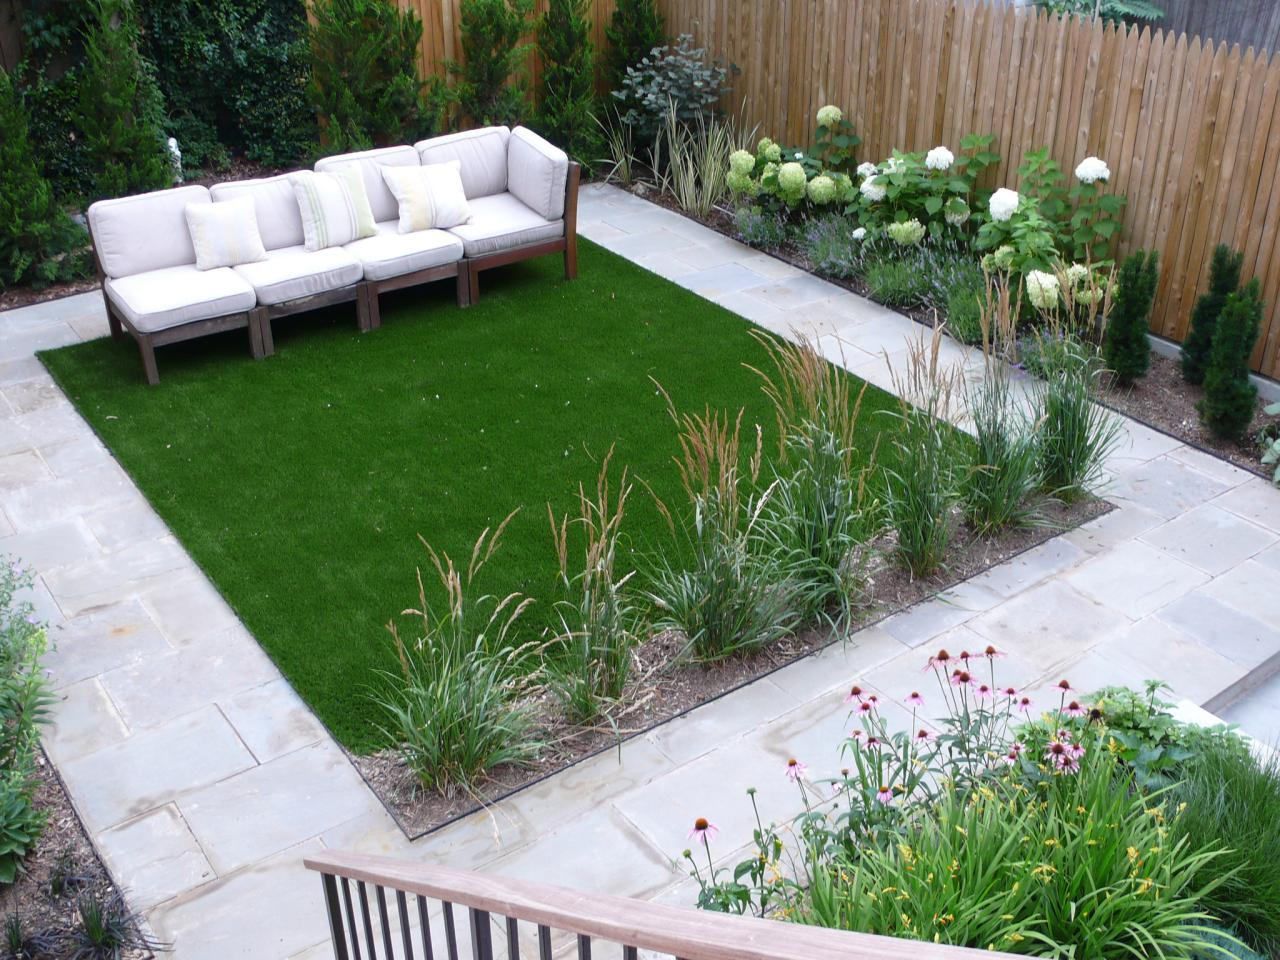 Related To: Landscape And Garden Design Landscaping